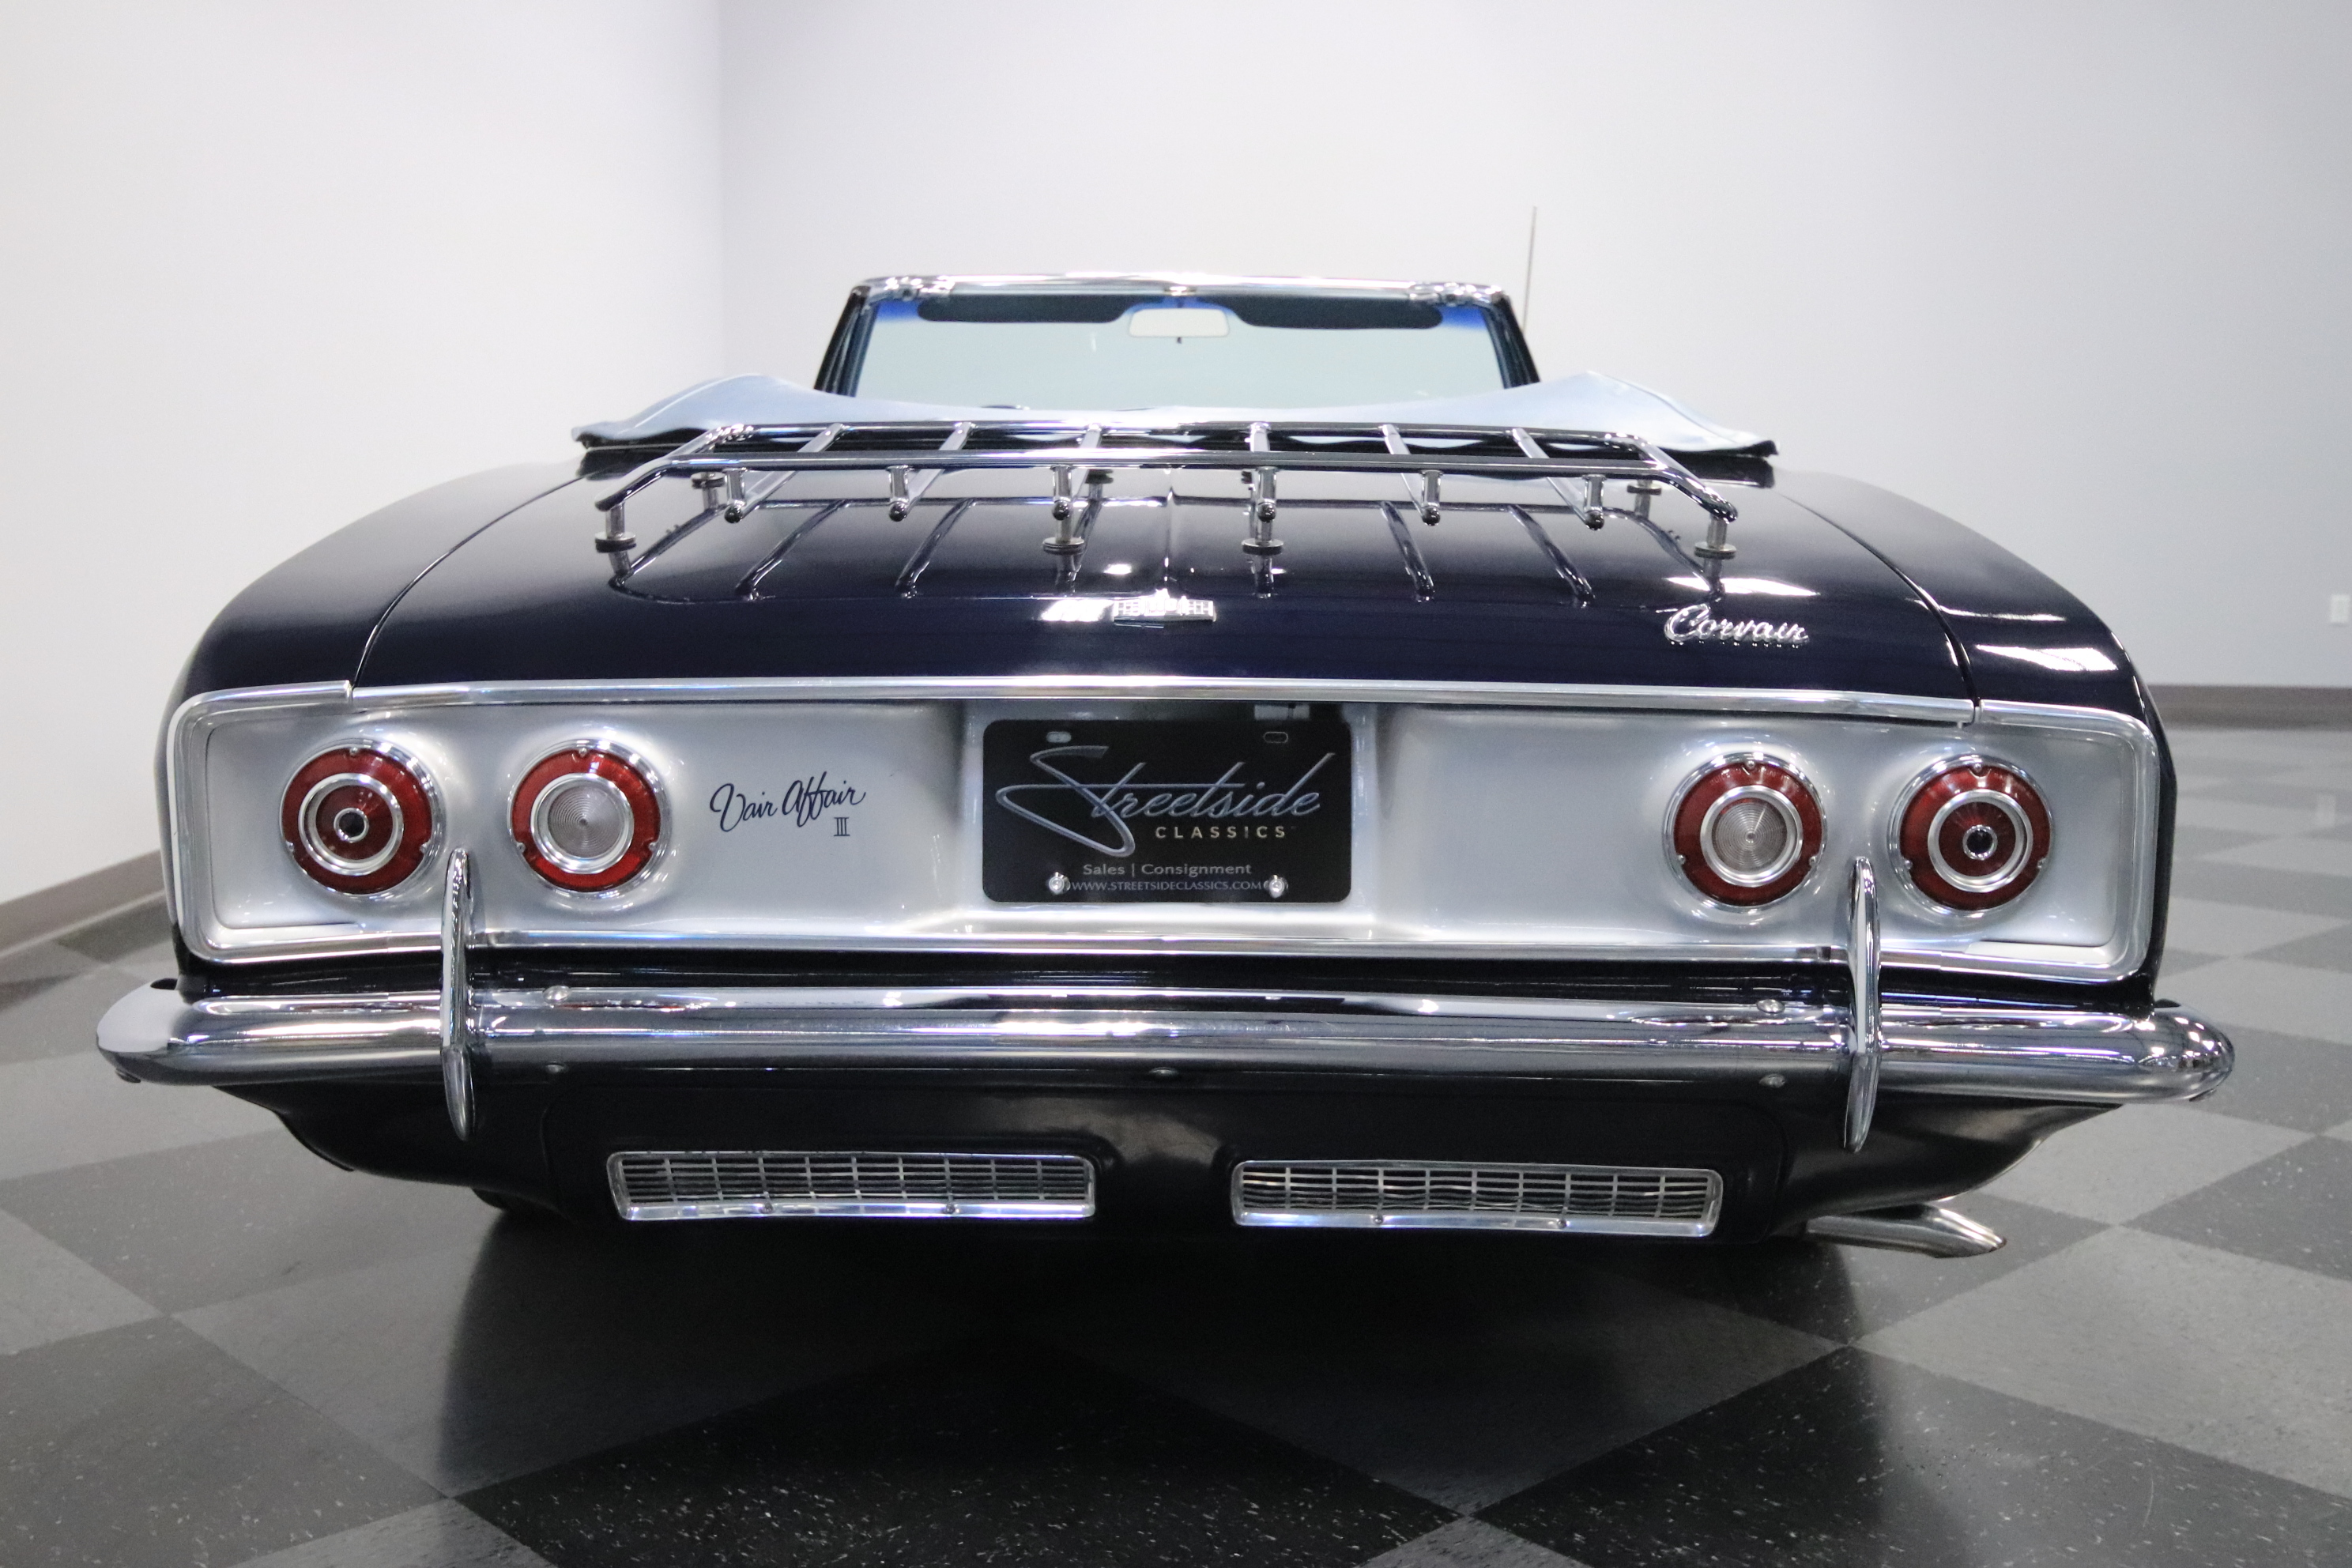 Chevrolet Corvair Monza s Matching 164 Ci Flat 6 Auto Clean for sale ...